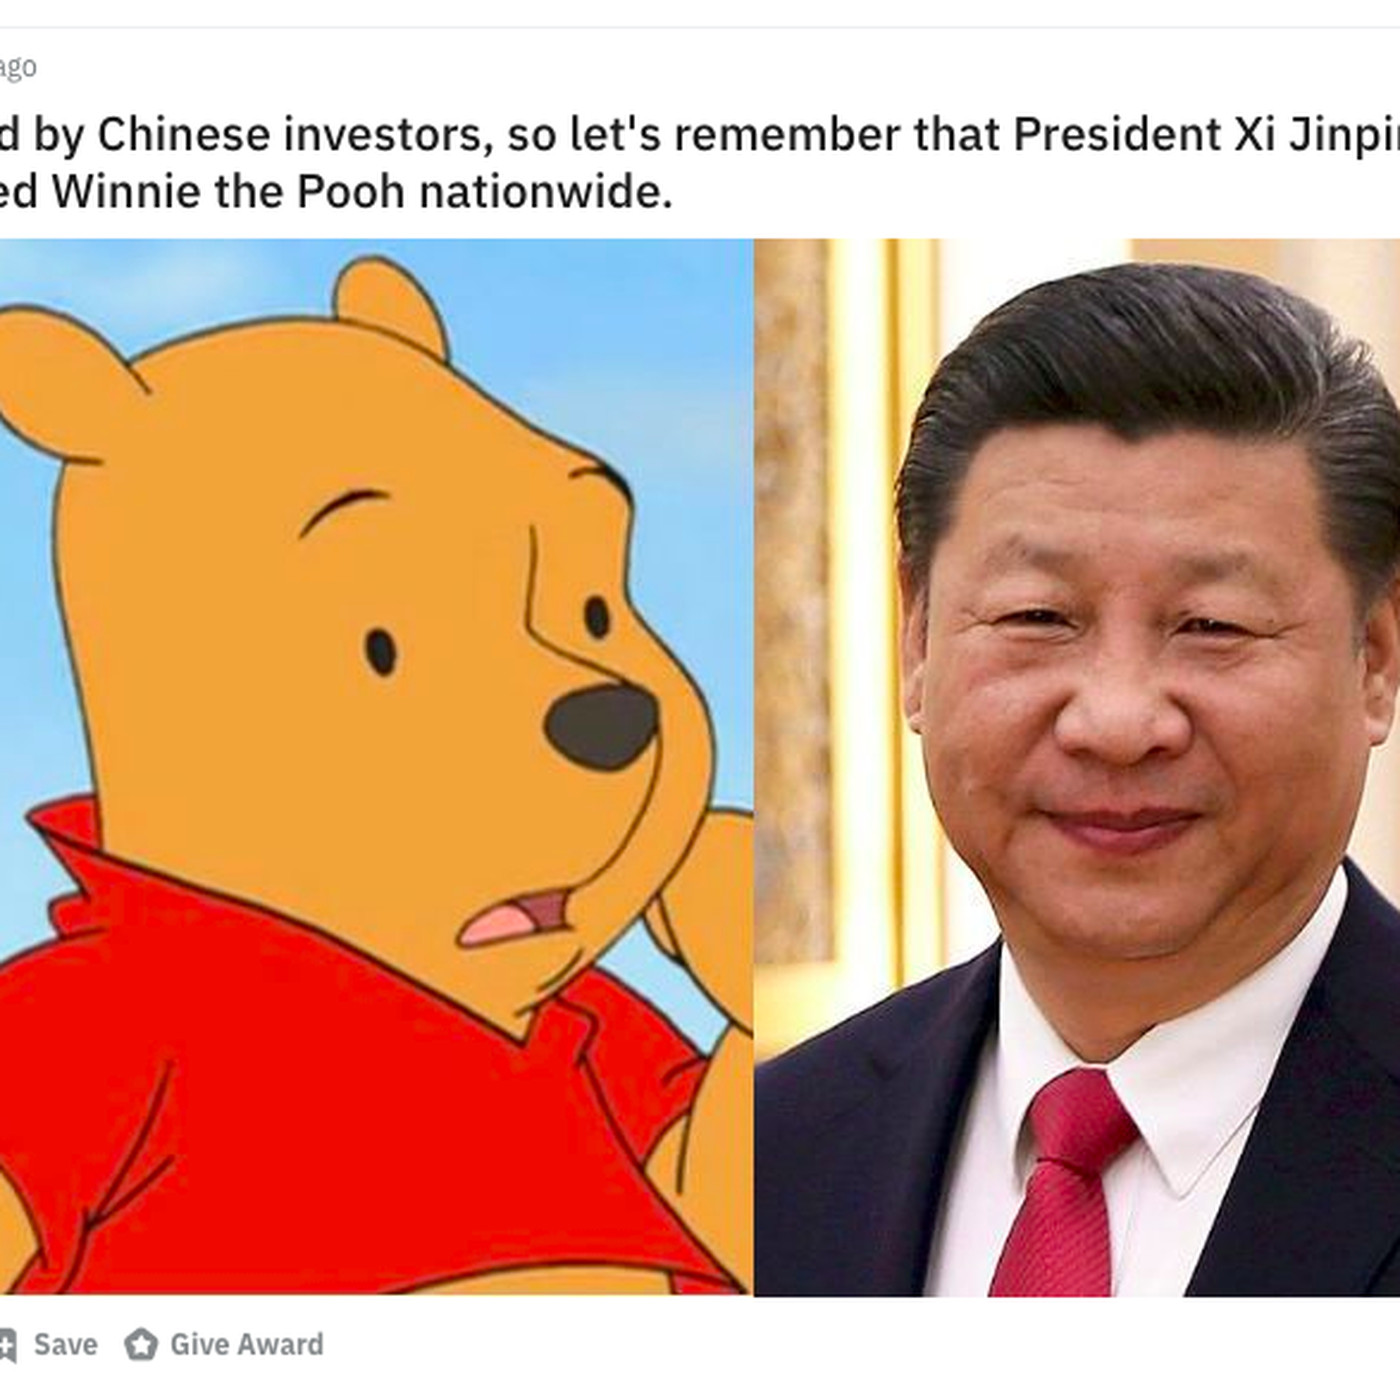 Reddit Gets A 150 Million Investment From Tencent And Users Are Posting Memes To Mock The Deal The Verge China said the tiananmen square massacre left 241 dead. reddit gets a 150 million investment